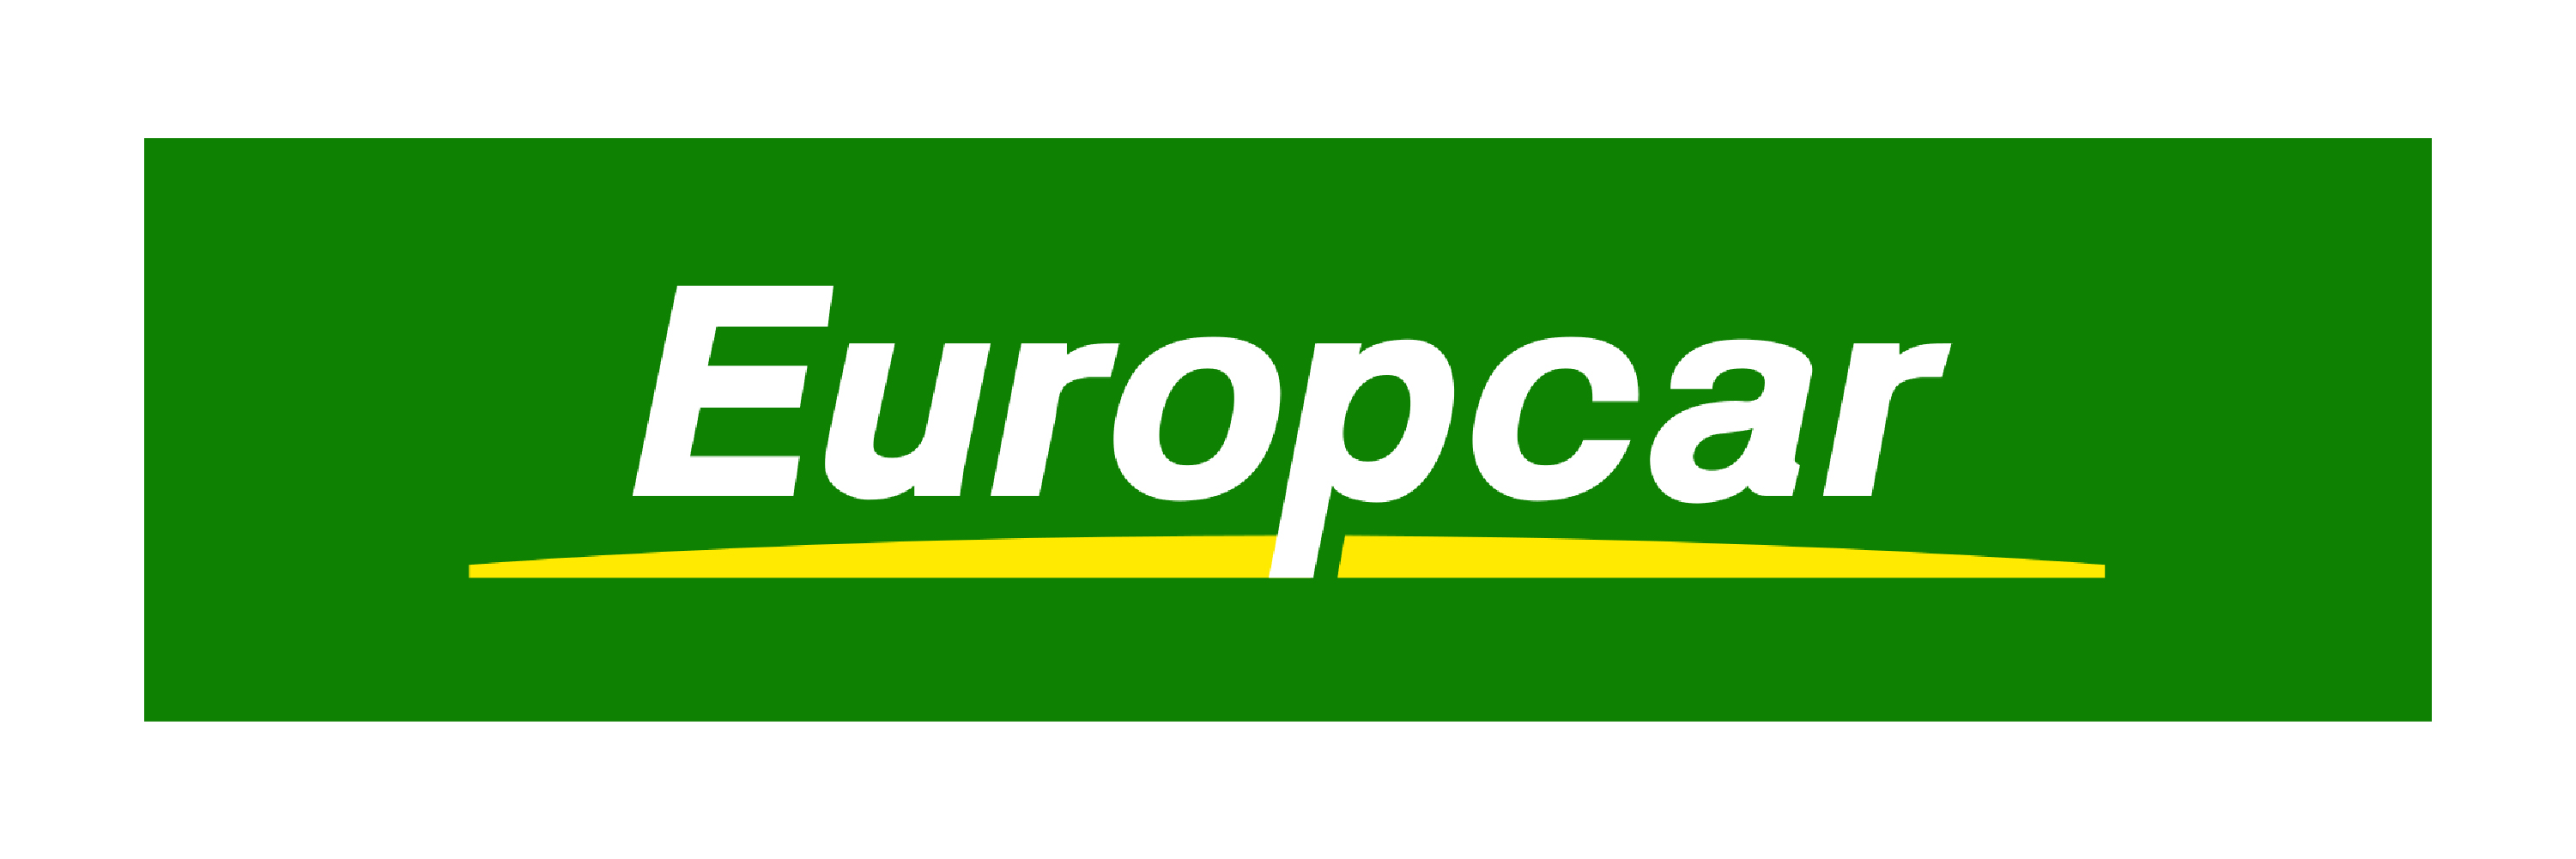 Europcar English Link School